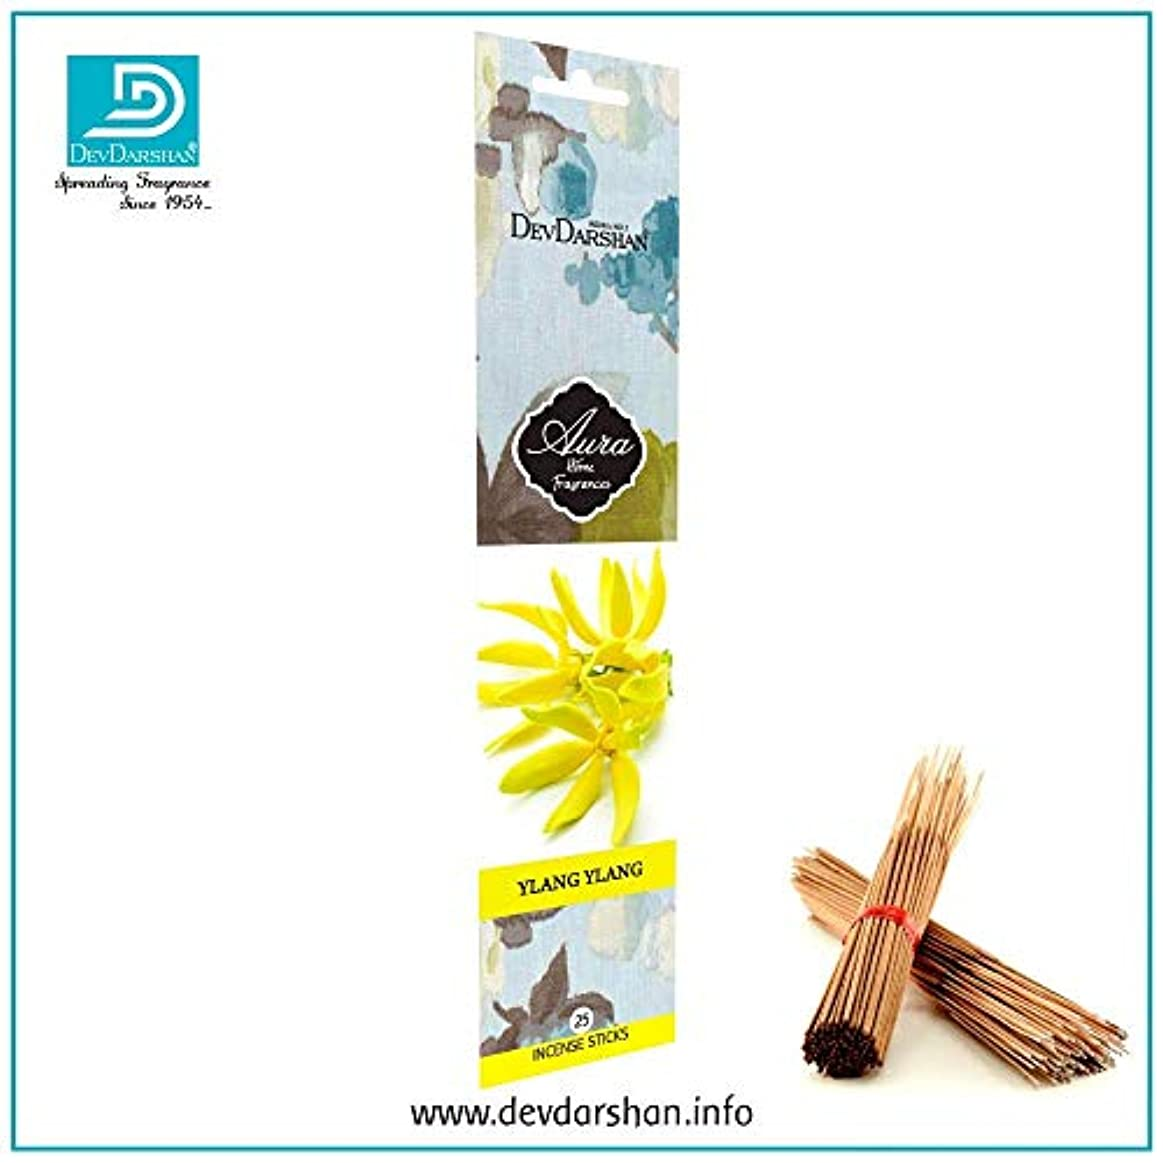 仕事に行くブルジョンピンポイントDevdarshan Aura Ylang Ylang 3 Packs of 25 Incense Stick Each